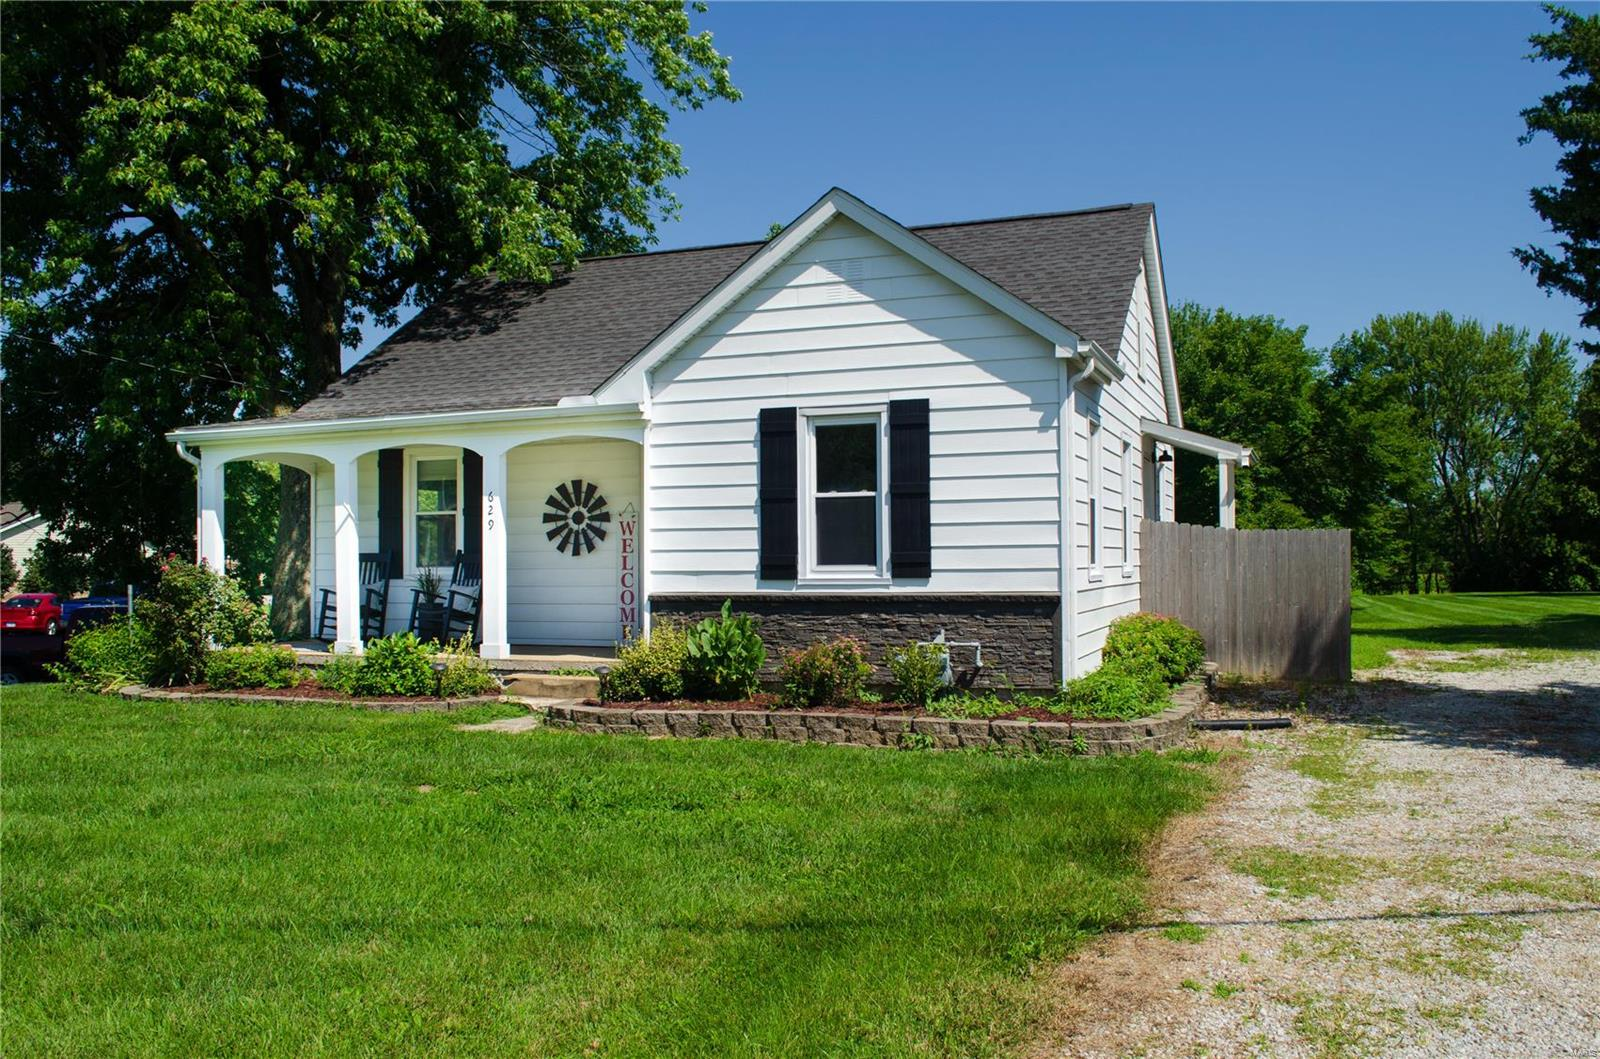 629 E Washington Property Photo - Millstadt, IL real estate listing